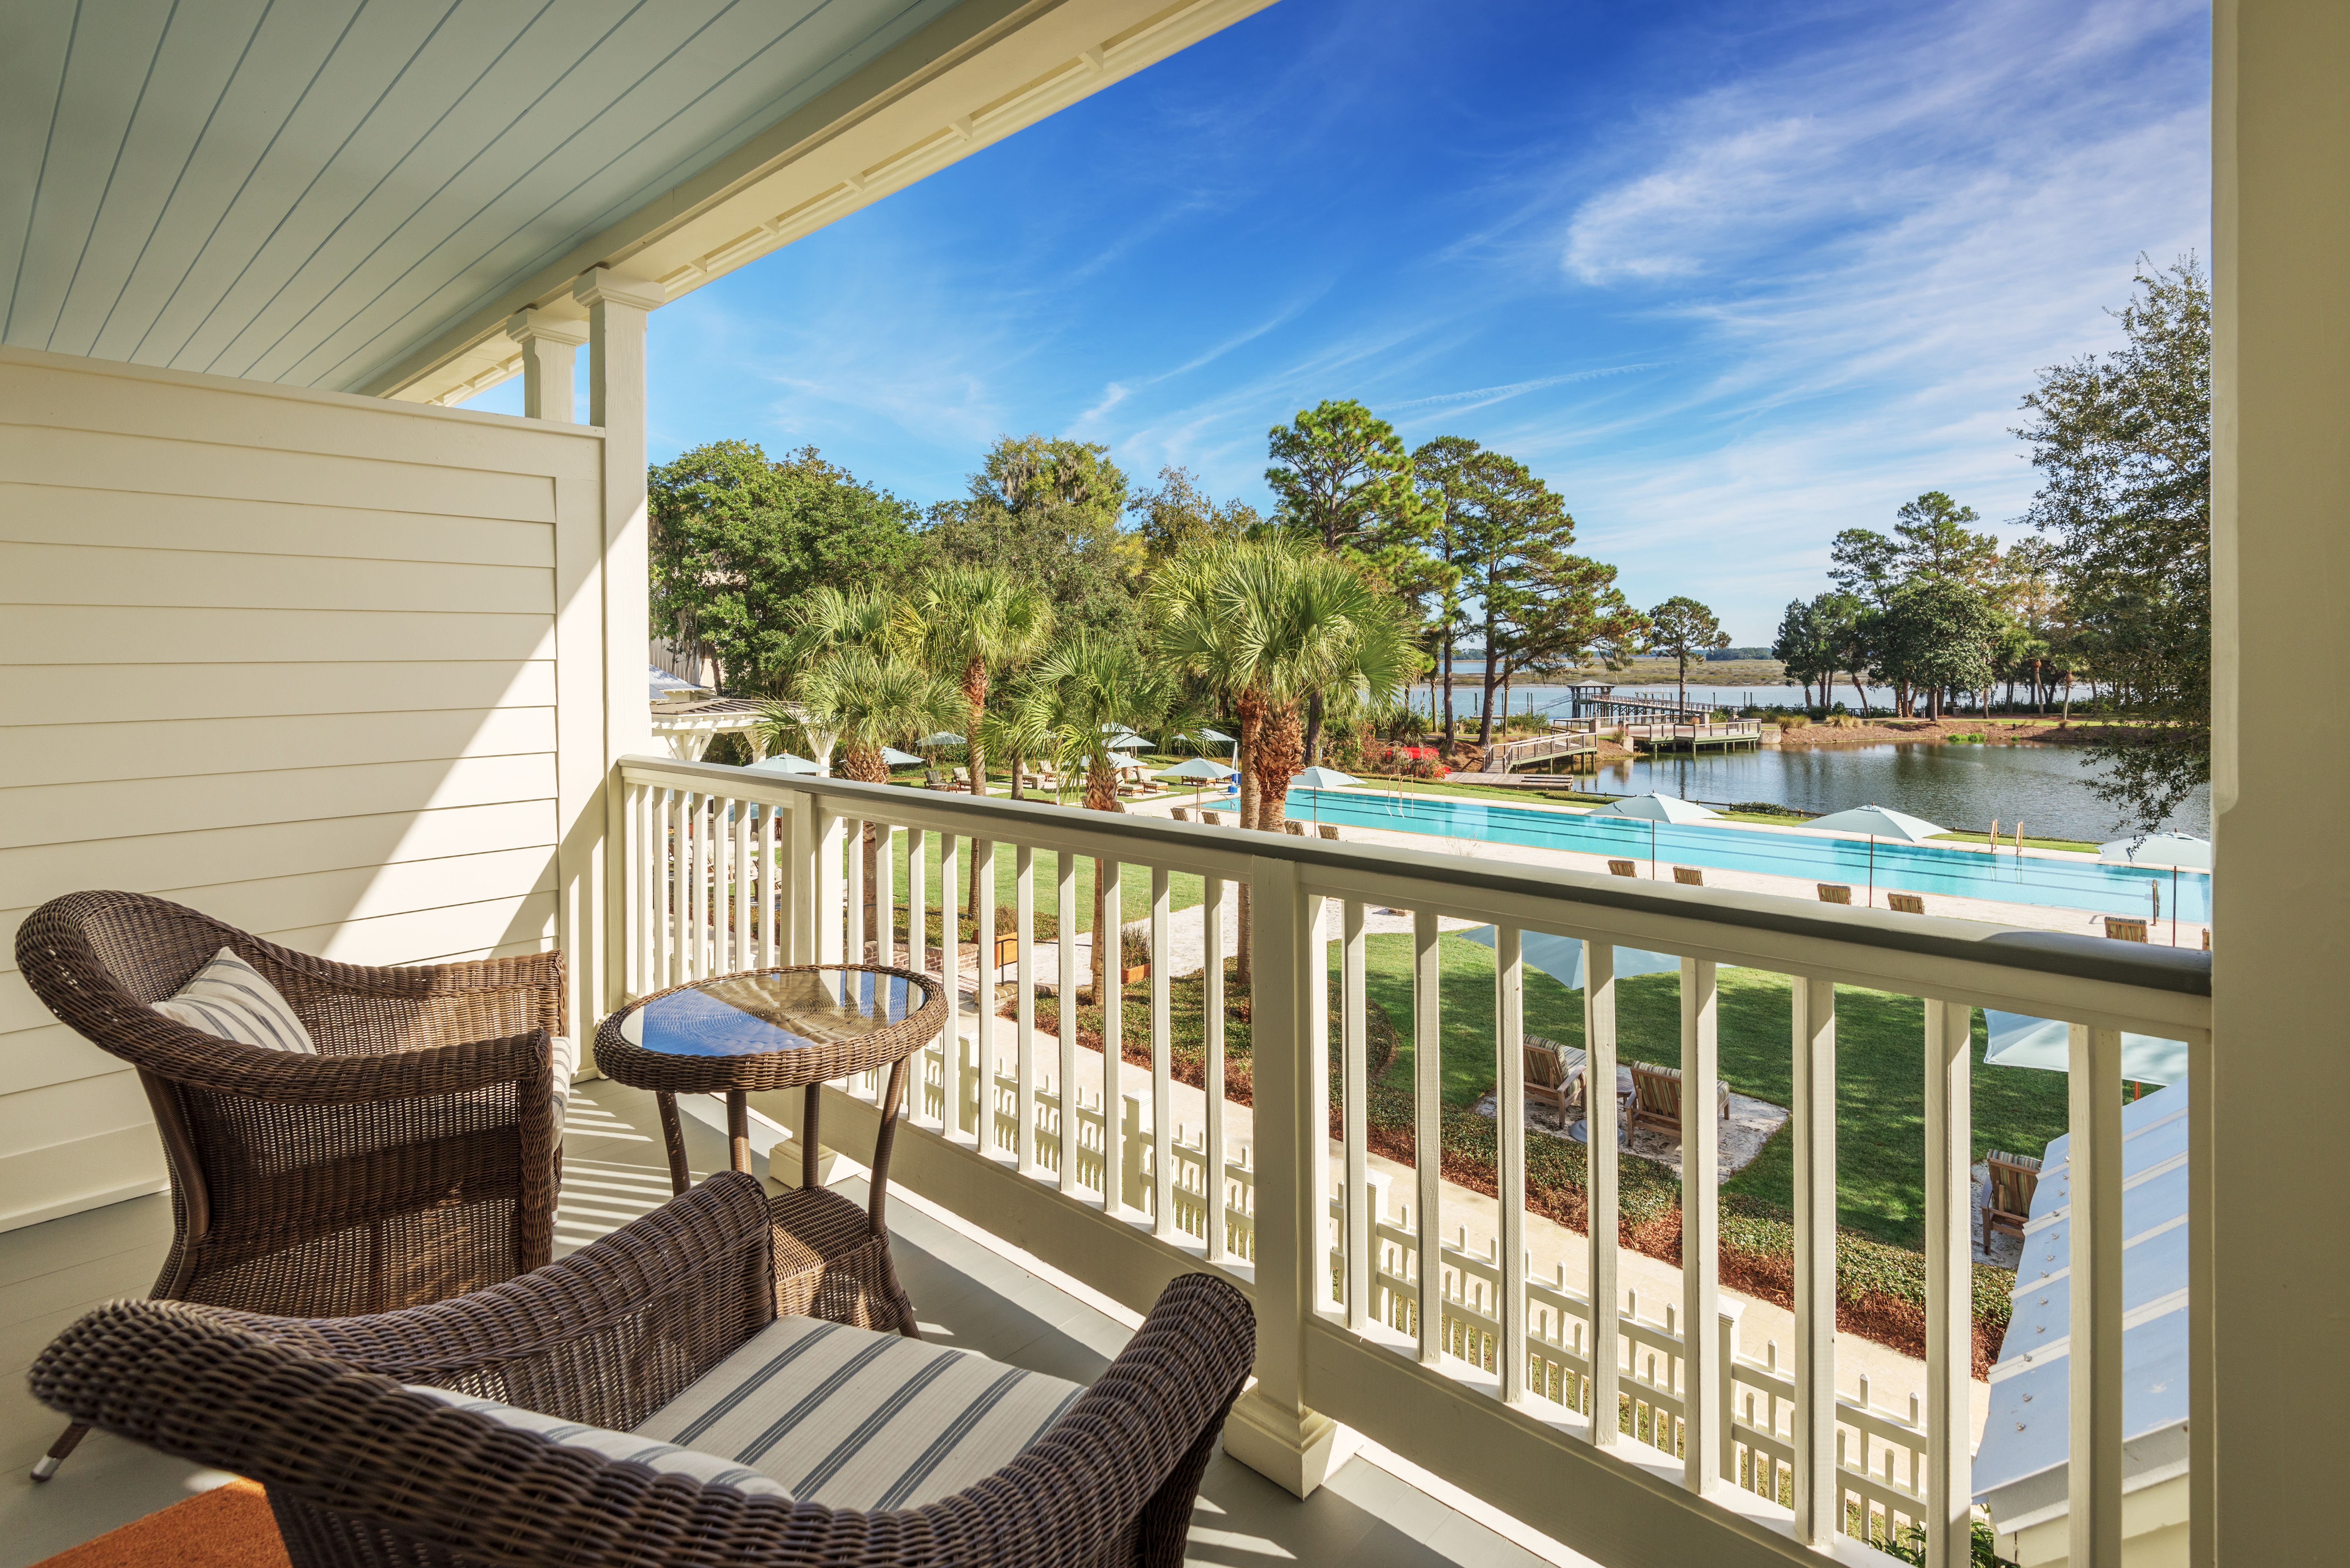 Inn at palmetto bluff south carolina luxury hotel pool view hotel room at montage